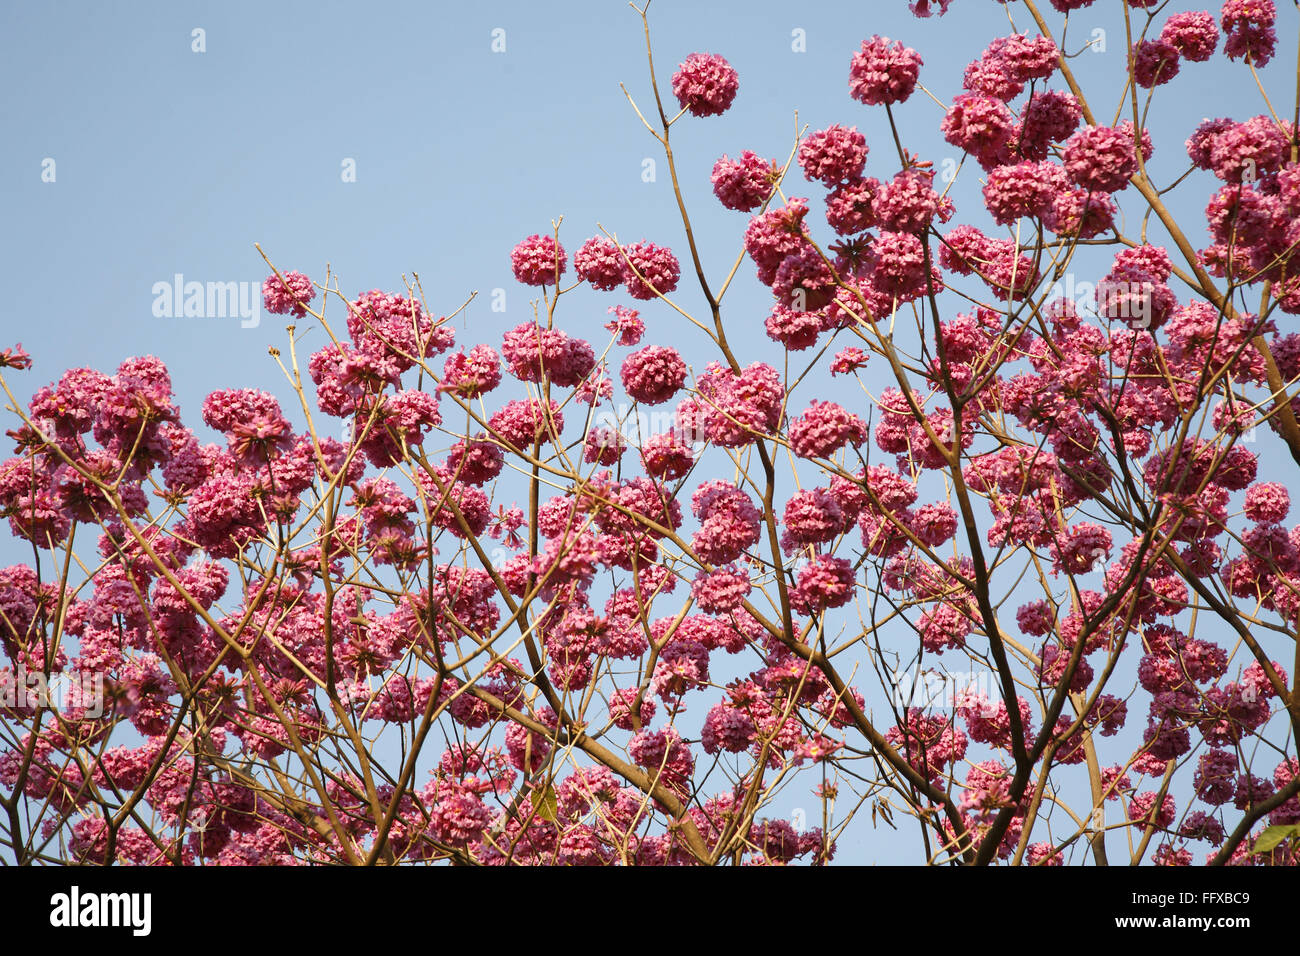 Tree Full Of Flowers Beautiful Pink Trumpet Shaped Blossoms Latin